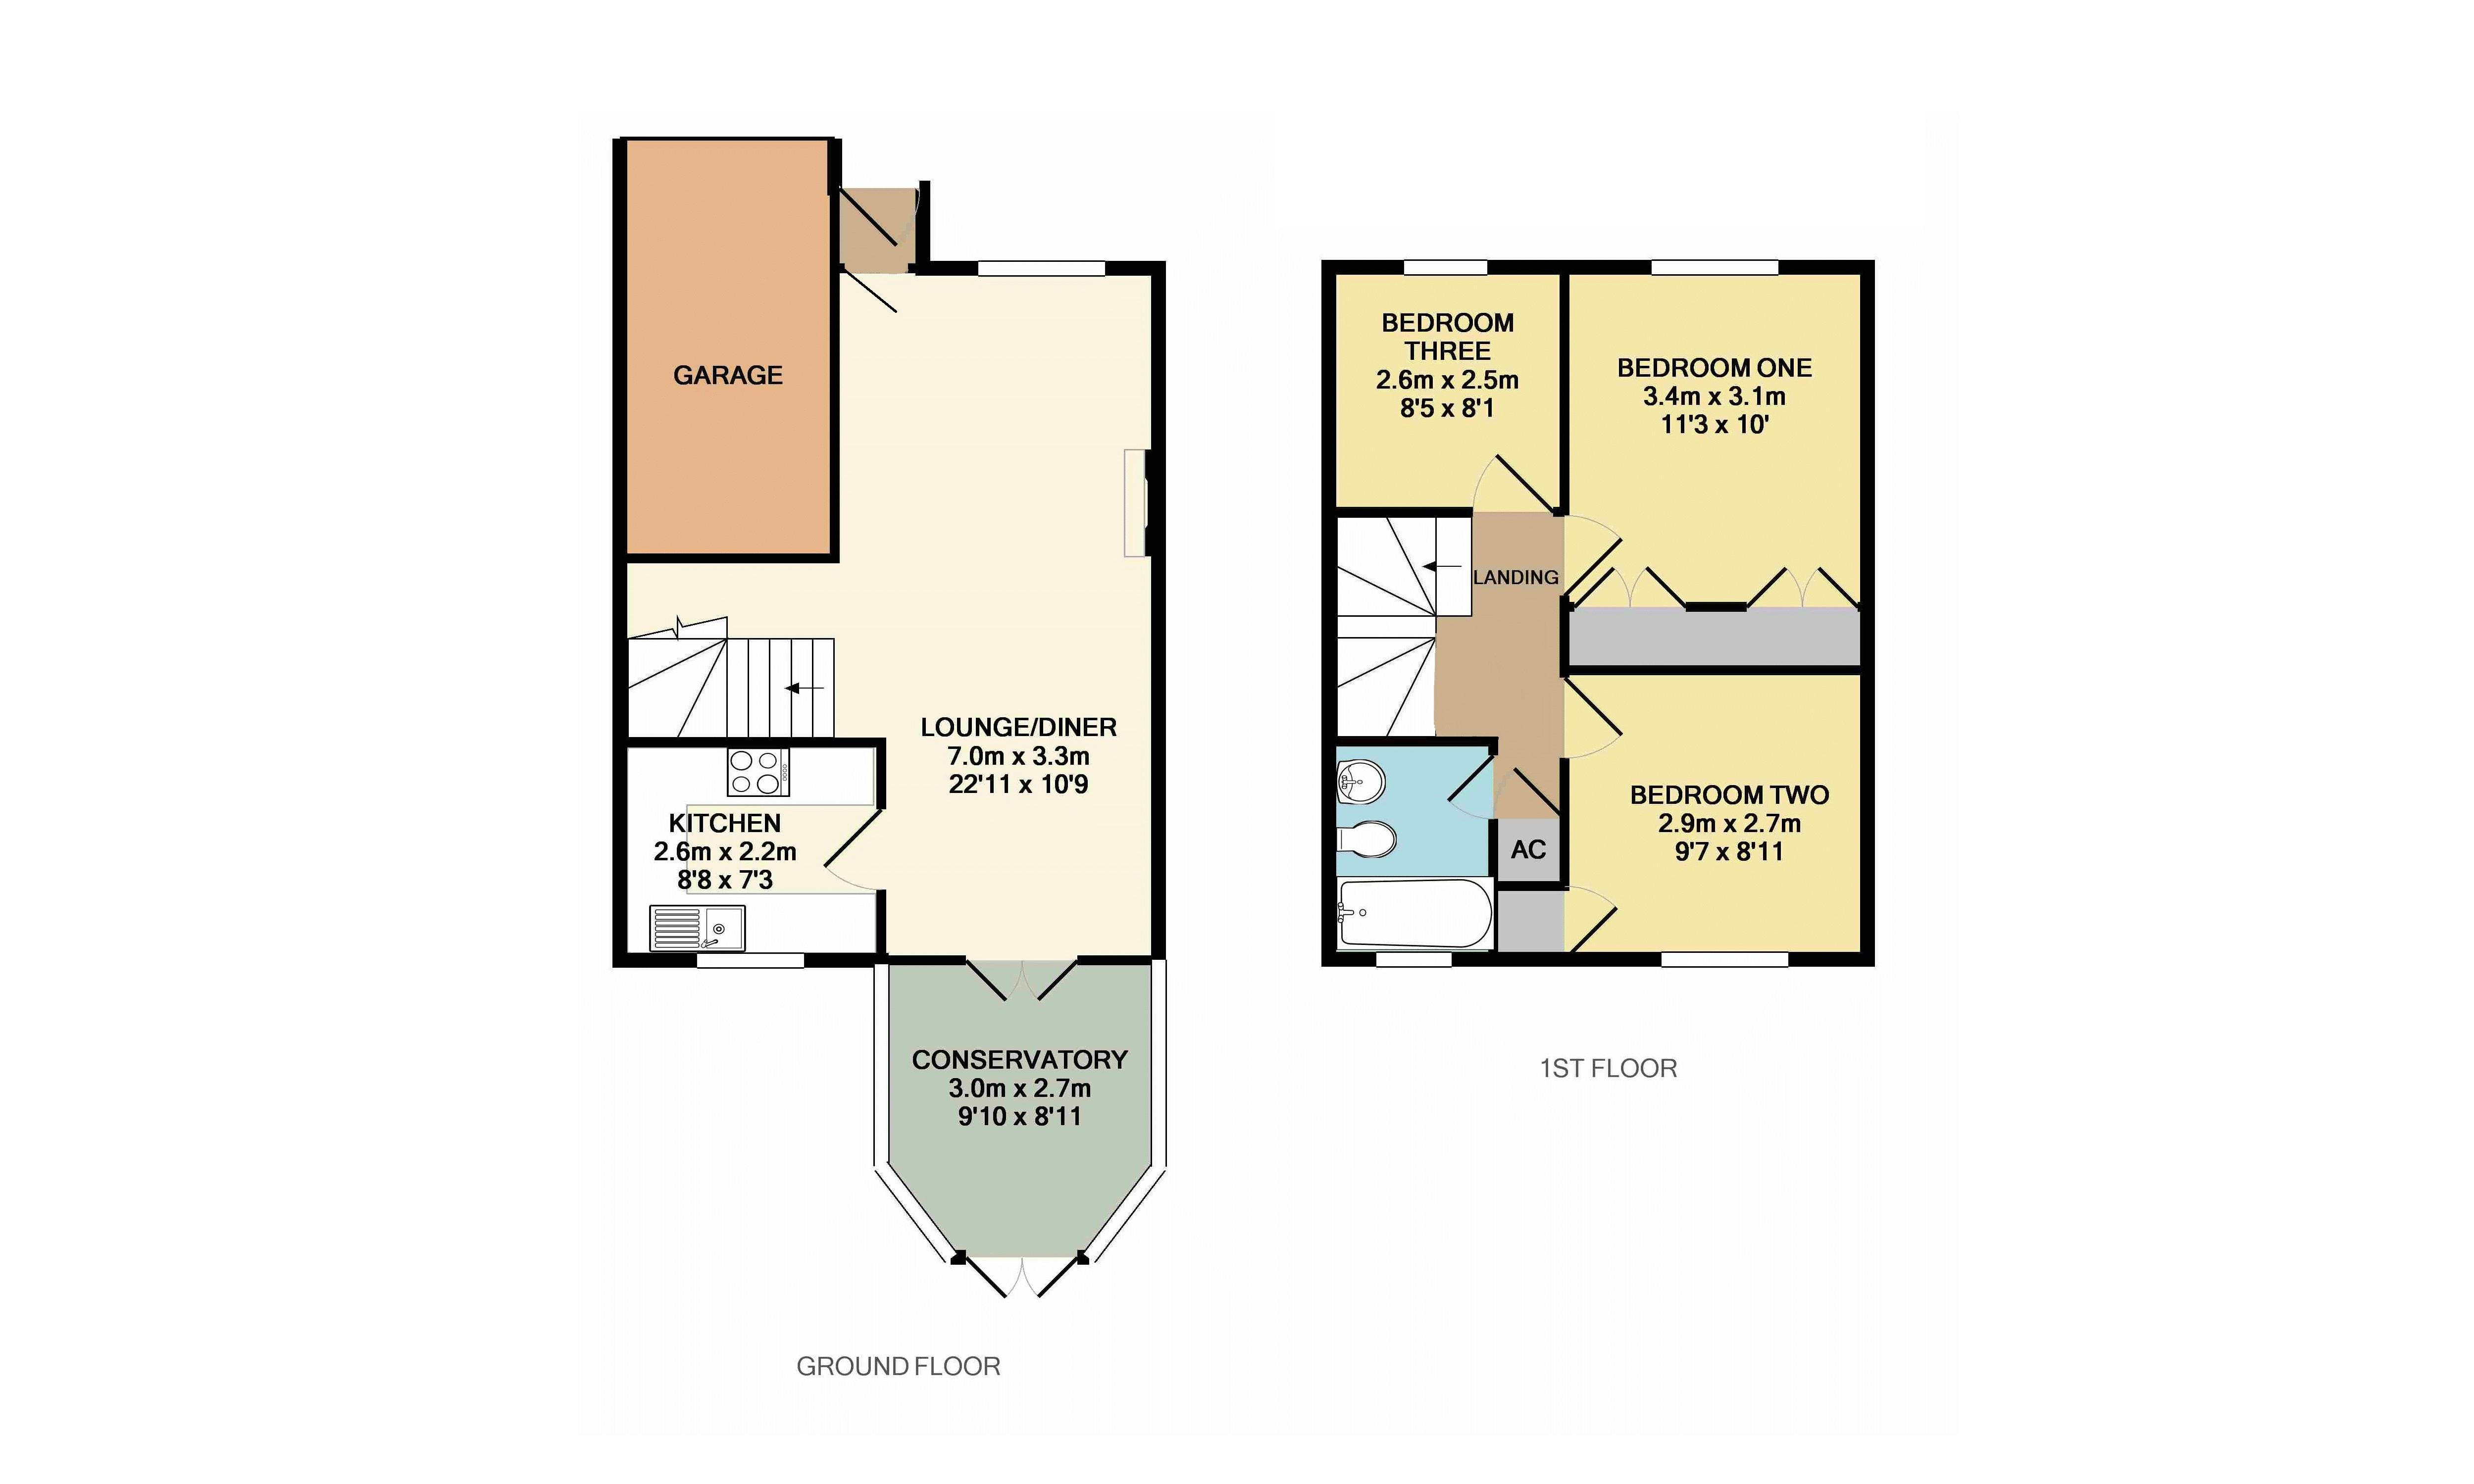 3 Bedroom House For Sale In Luton